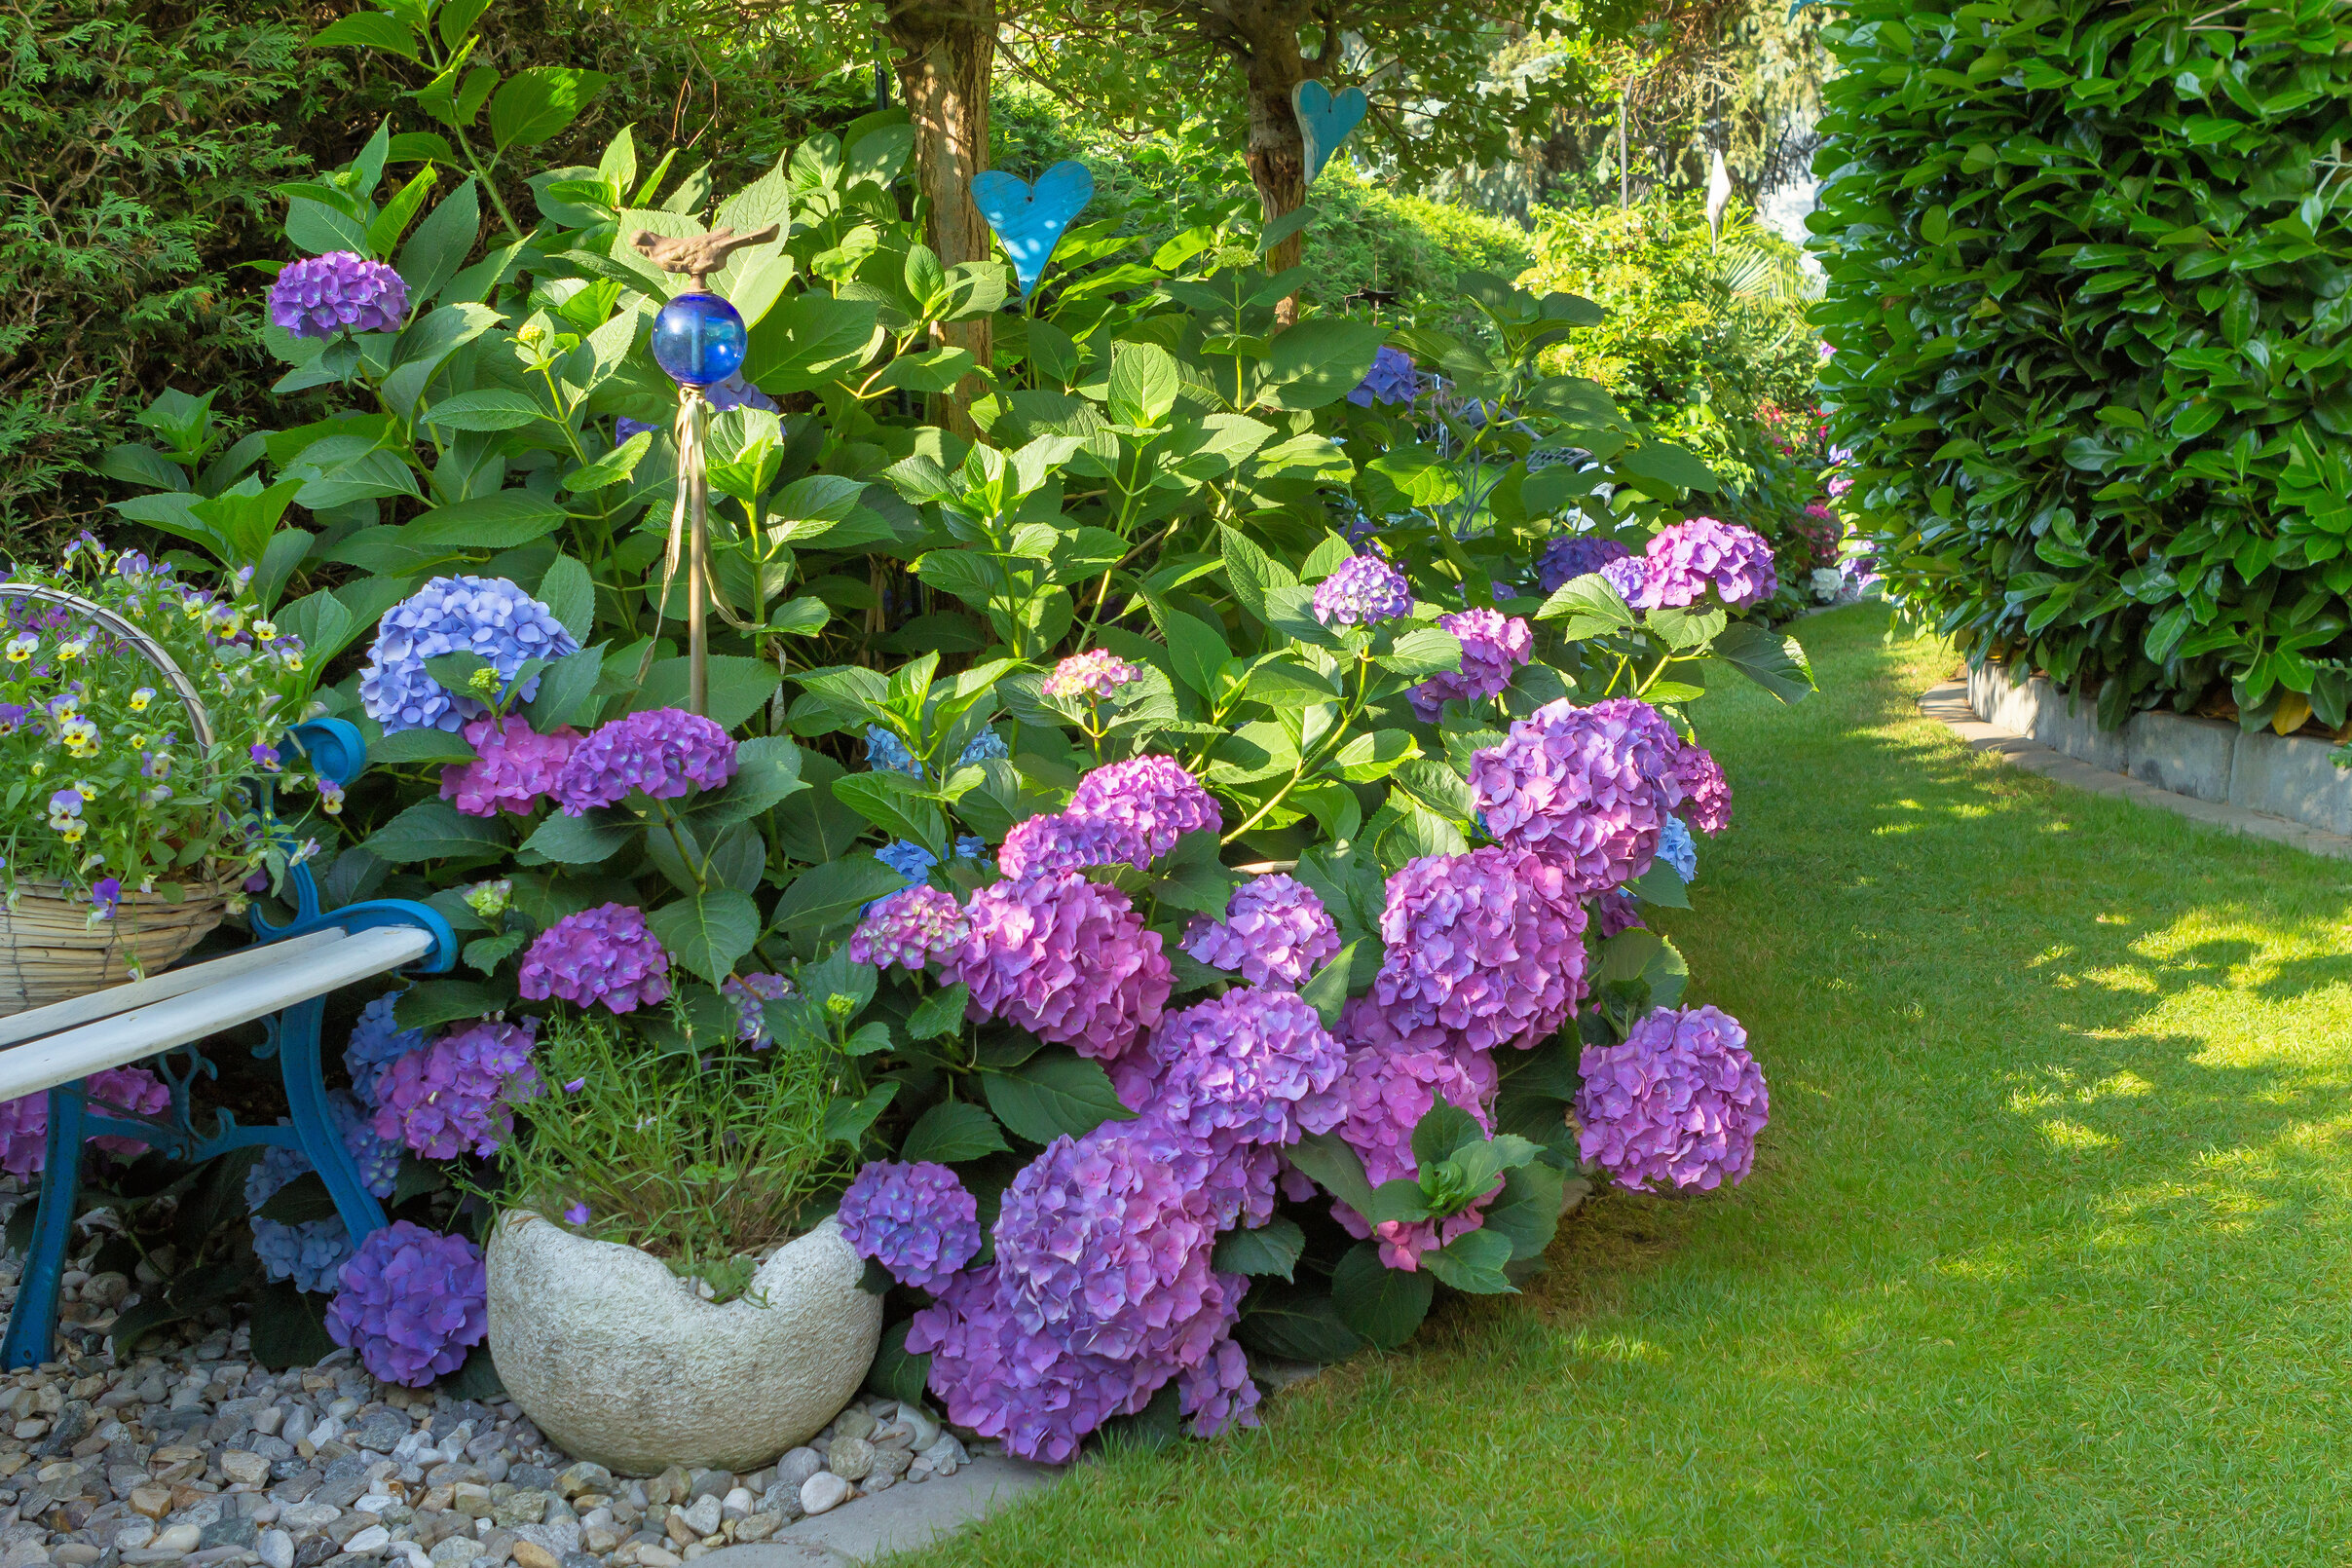 A pink and purple hydrangea plant in a garden next to a bench and green shrubs.